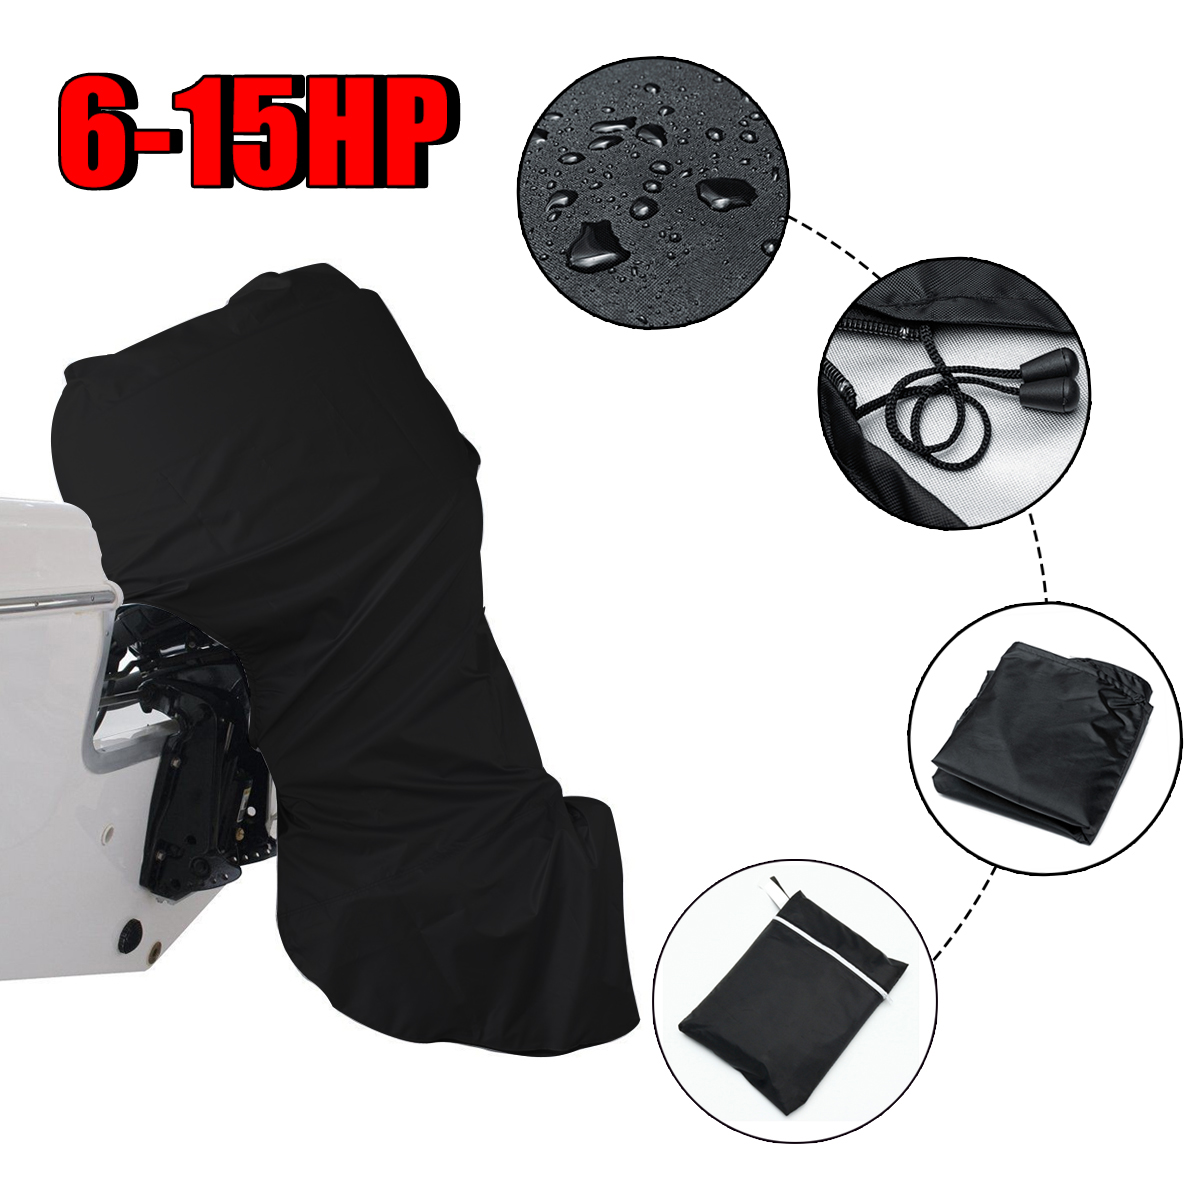 420D 110cm Boat Full Outboard Engine Motor Cover For 6-15HP Boat Motors Waterproof